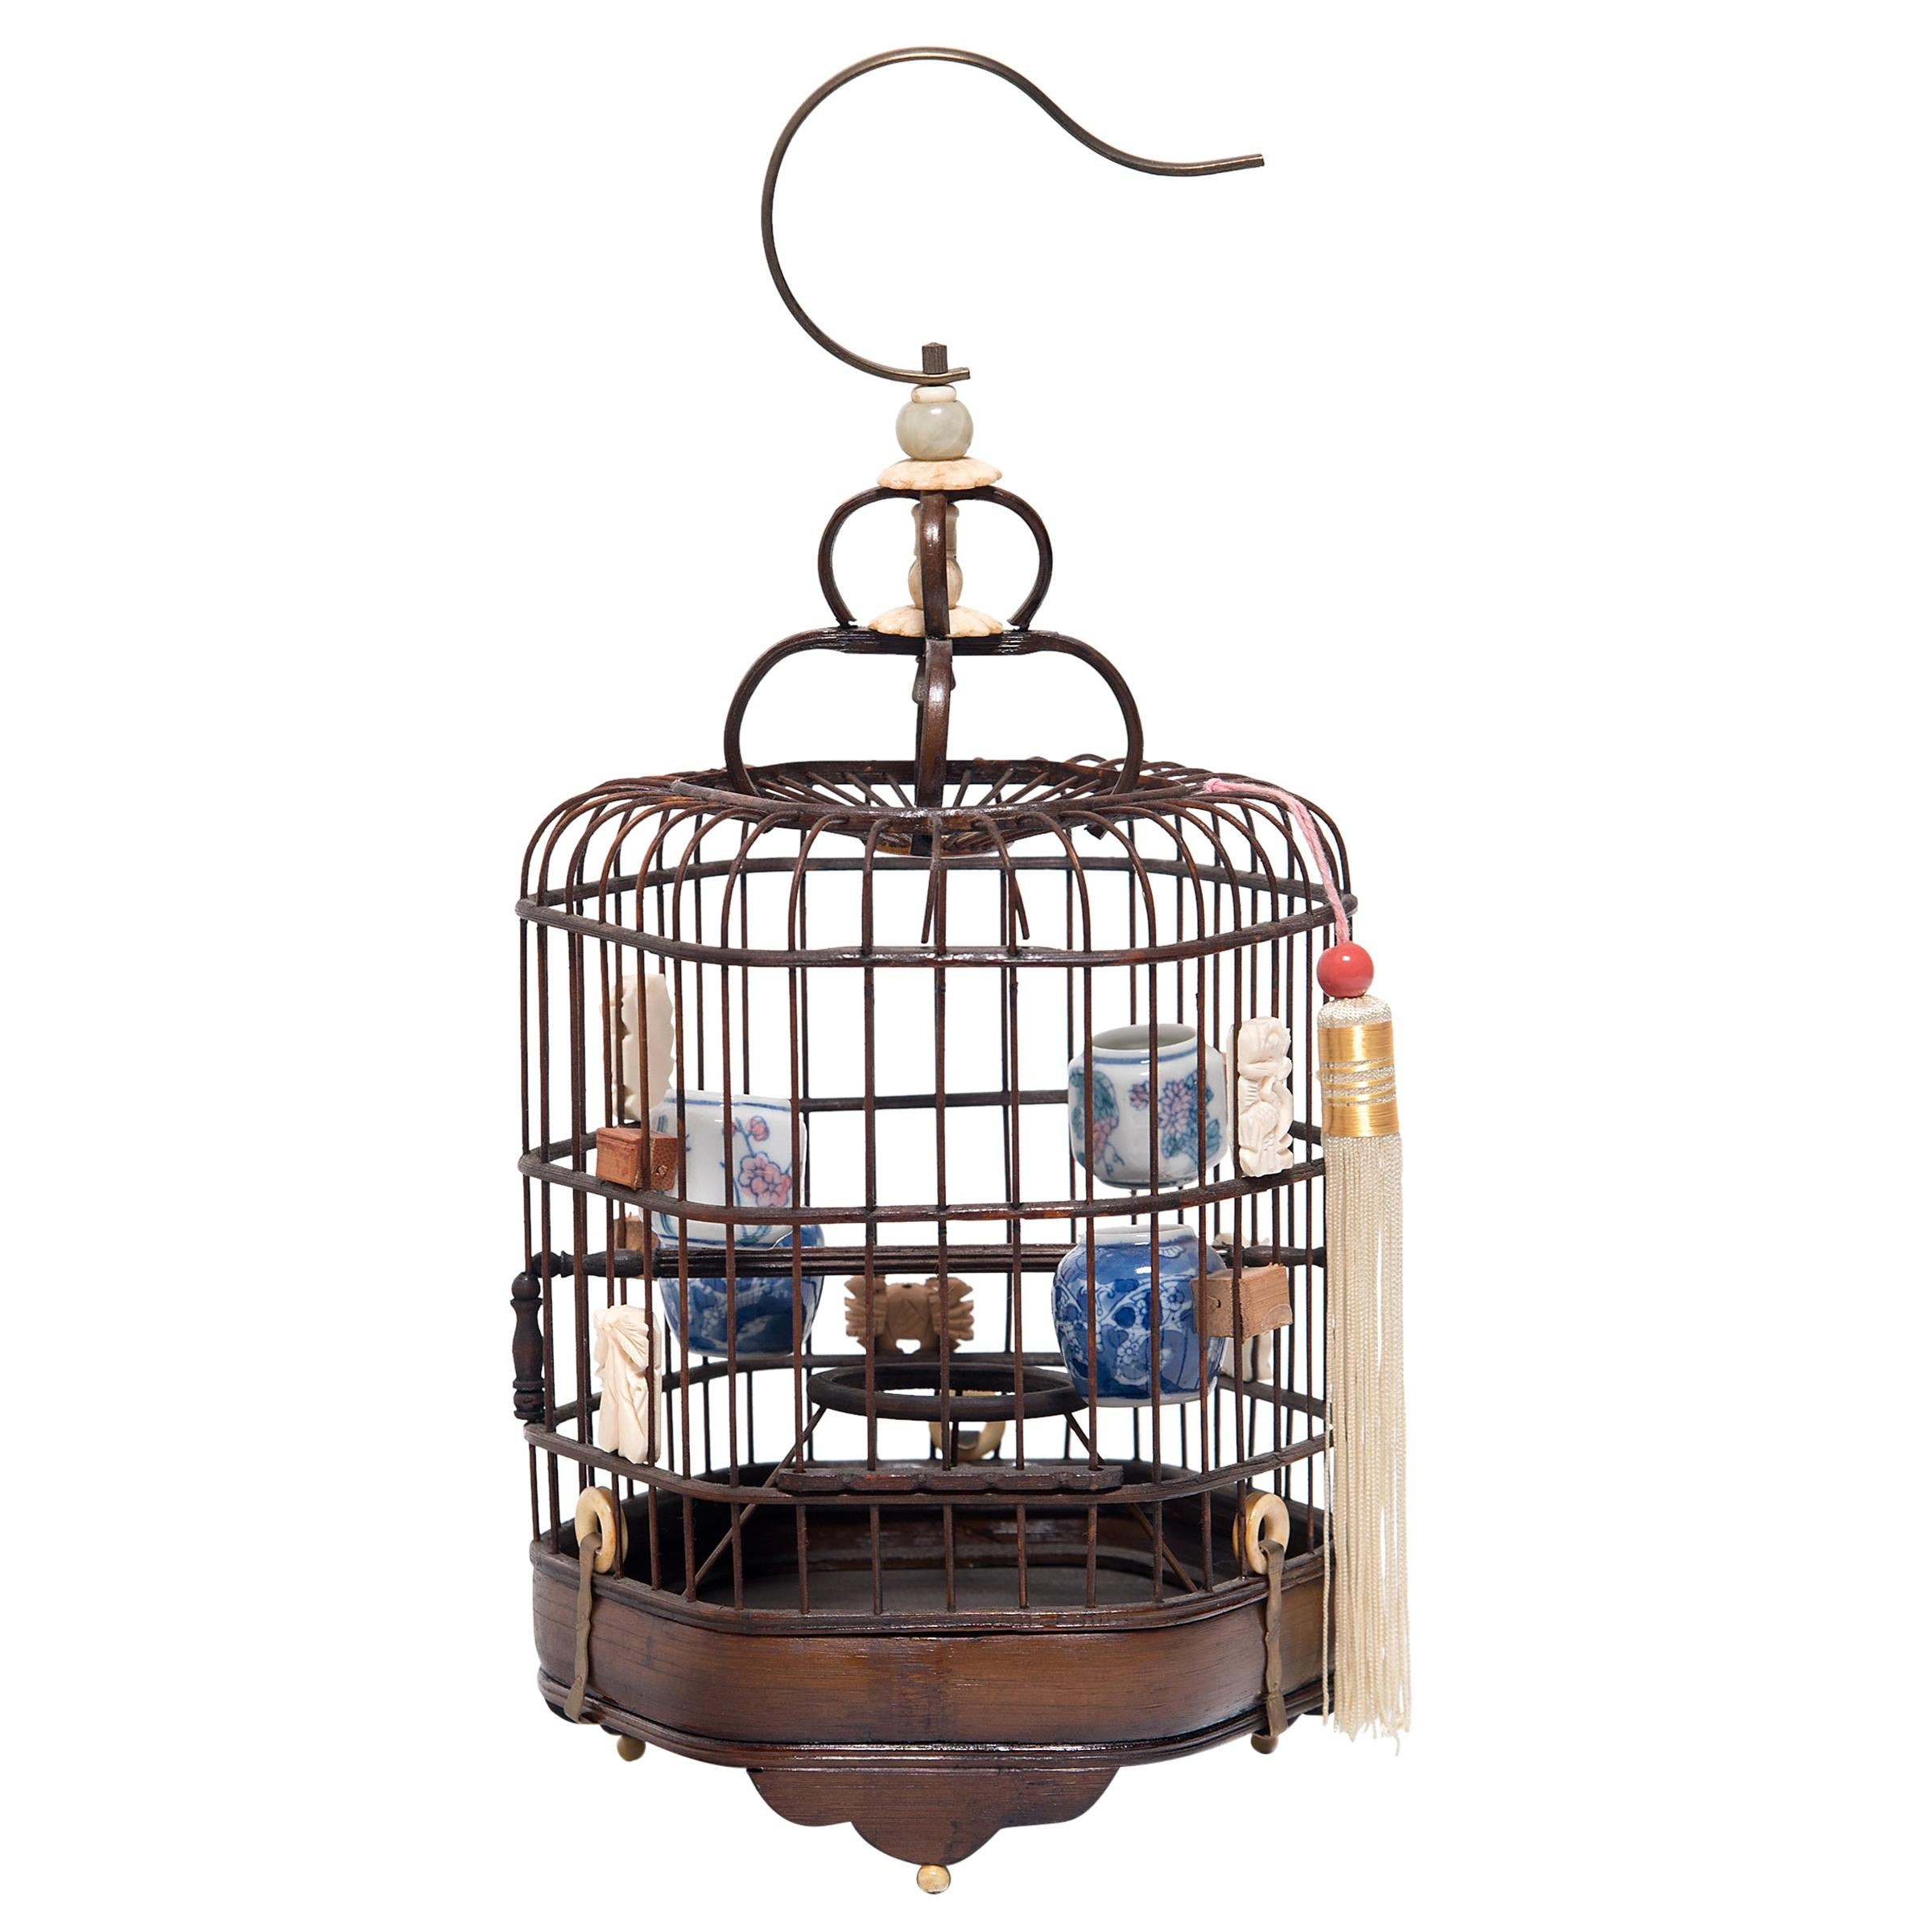 Fine Chinese Birdcage with Porcelain Waterpots, circa 1850